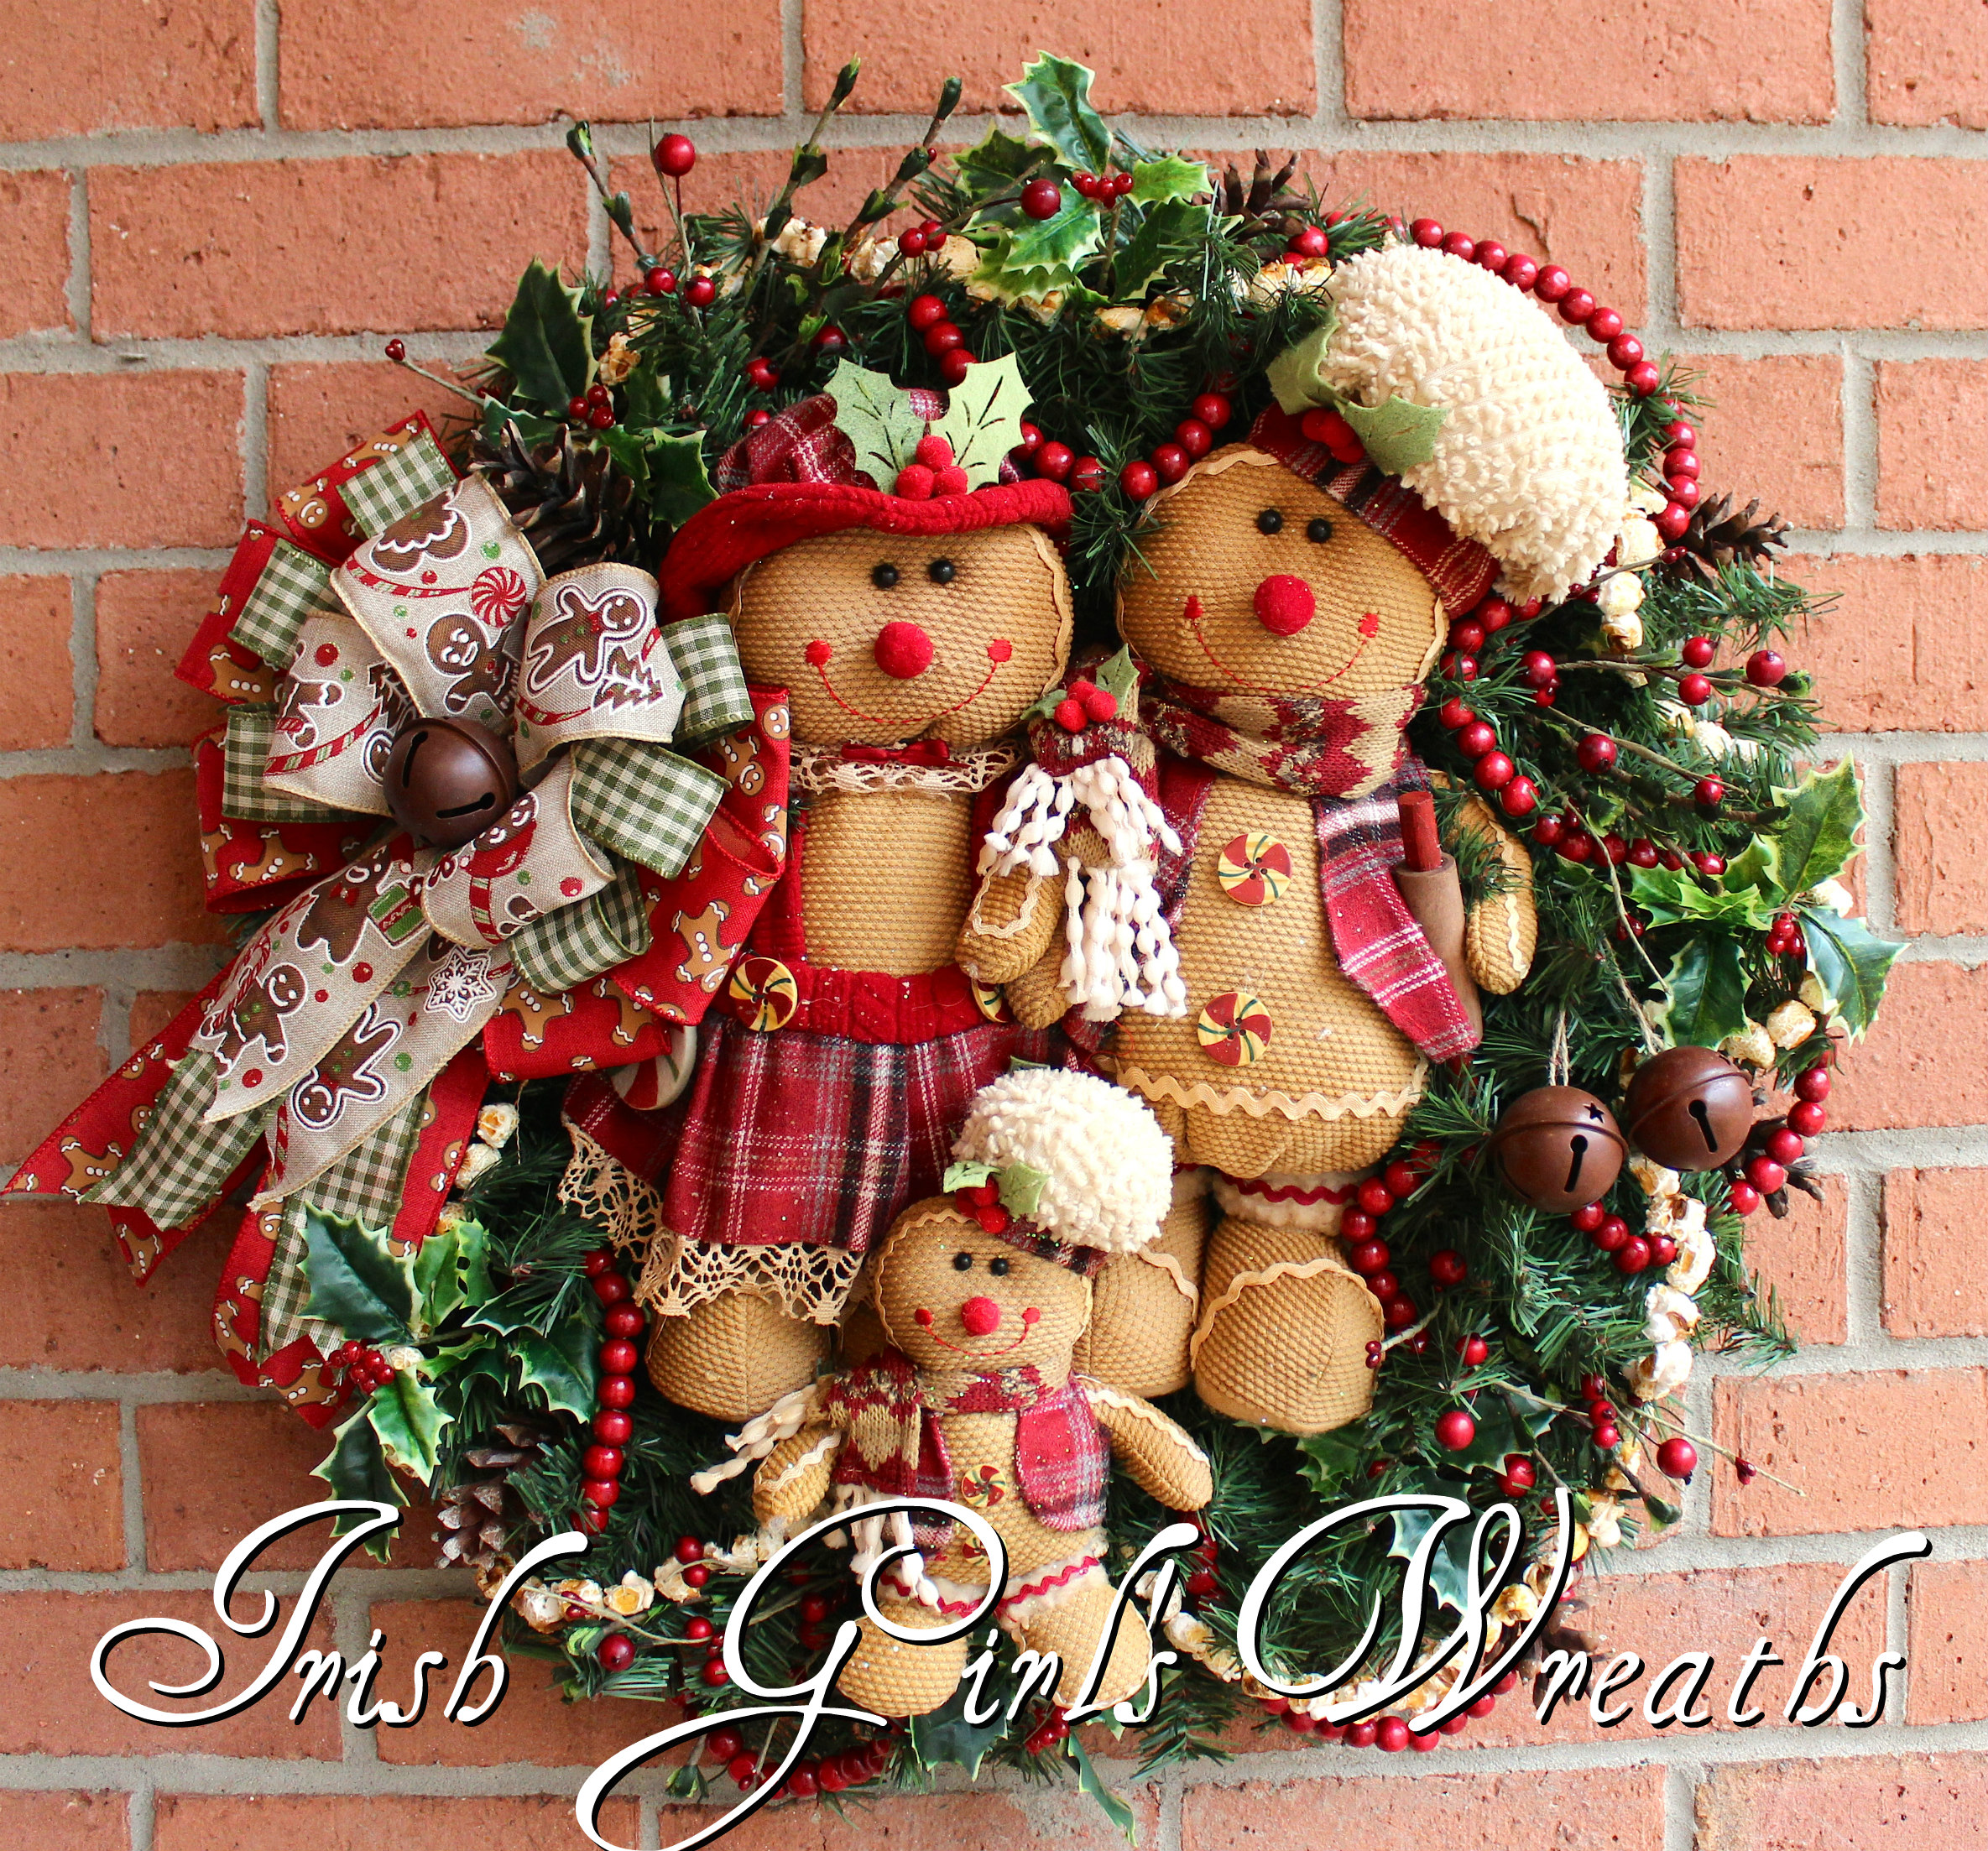 Rustic Gingerbread Family Wreath, Gingerbread Christmas Wreath, Popcorn Garland, Cranberry wood bead garland, sleigh bells, Ready to Ship